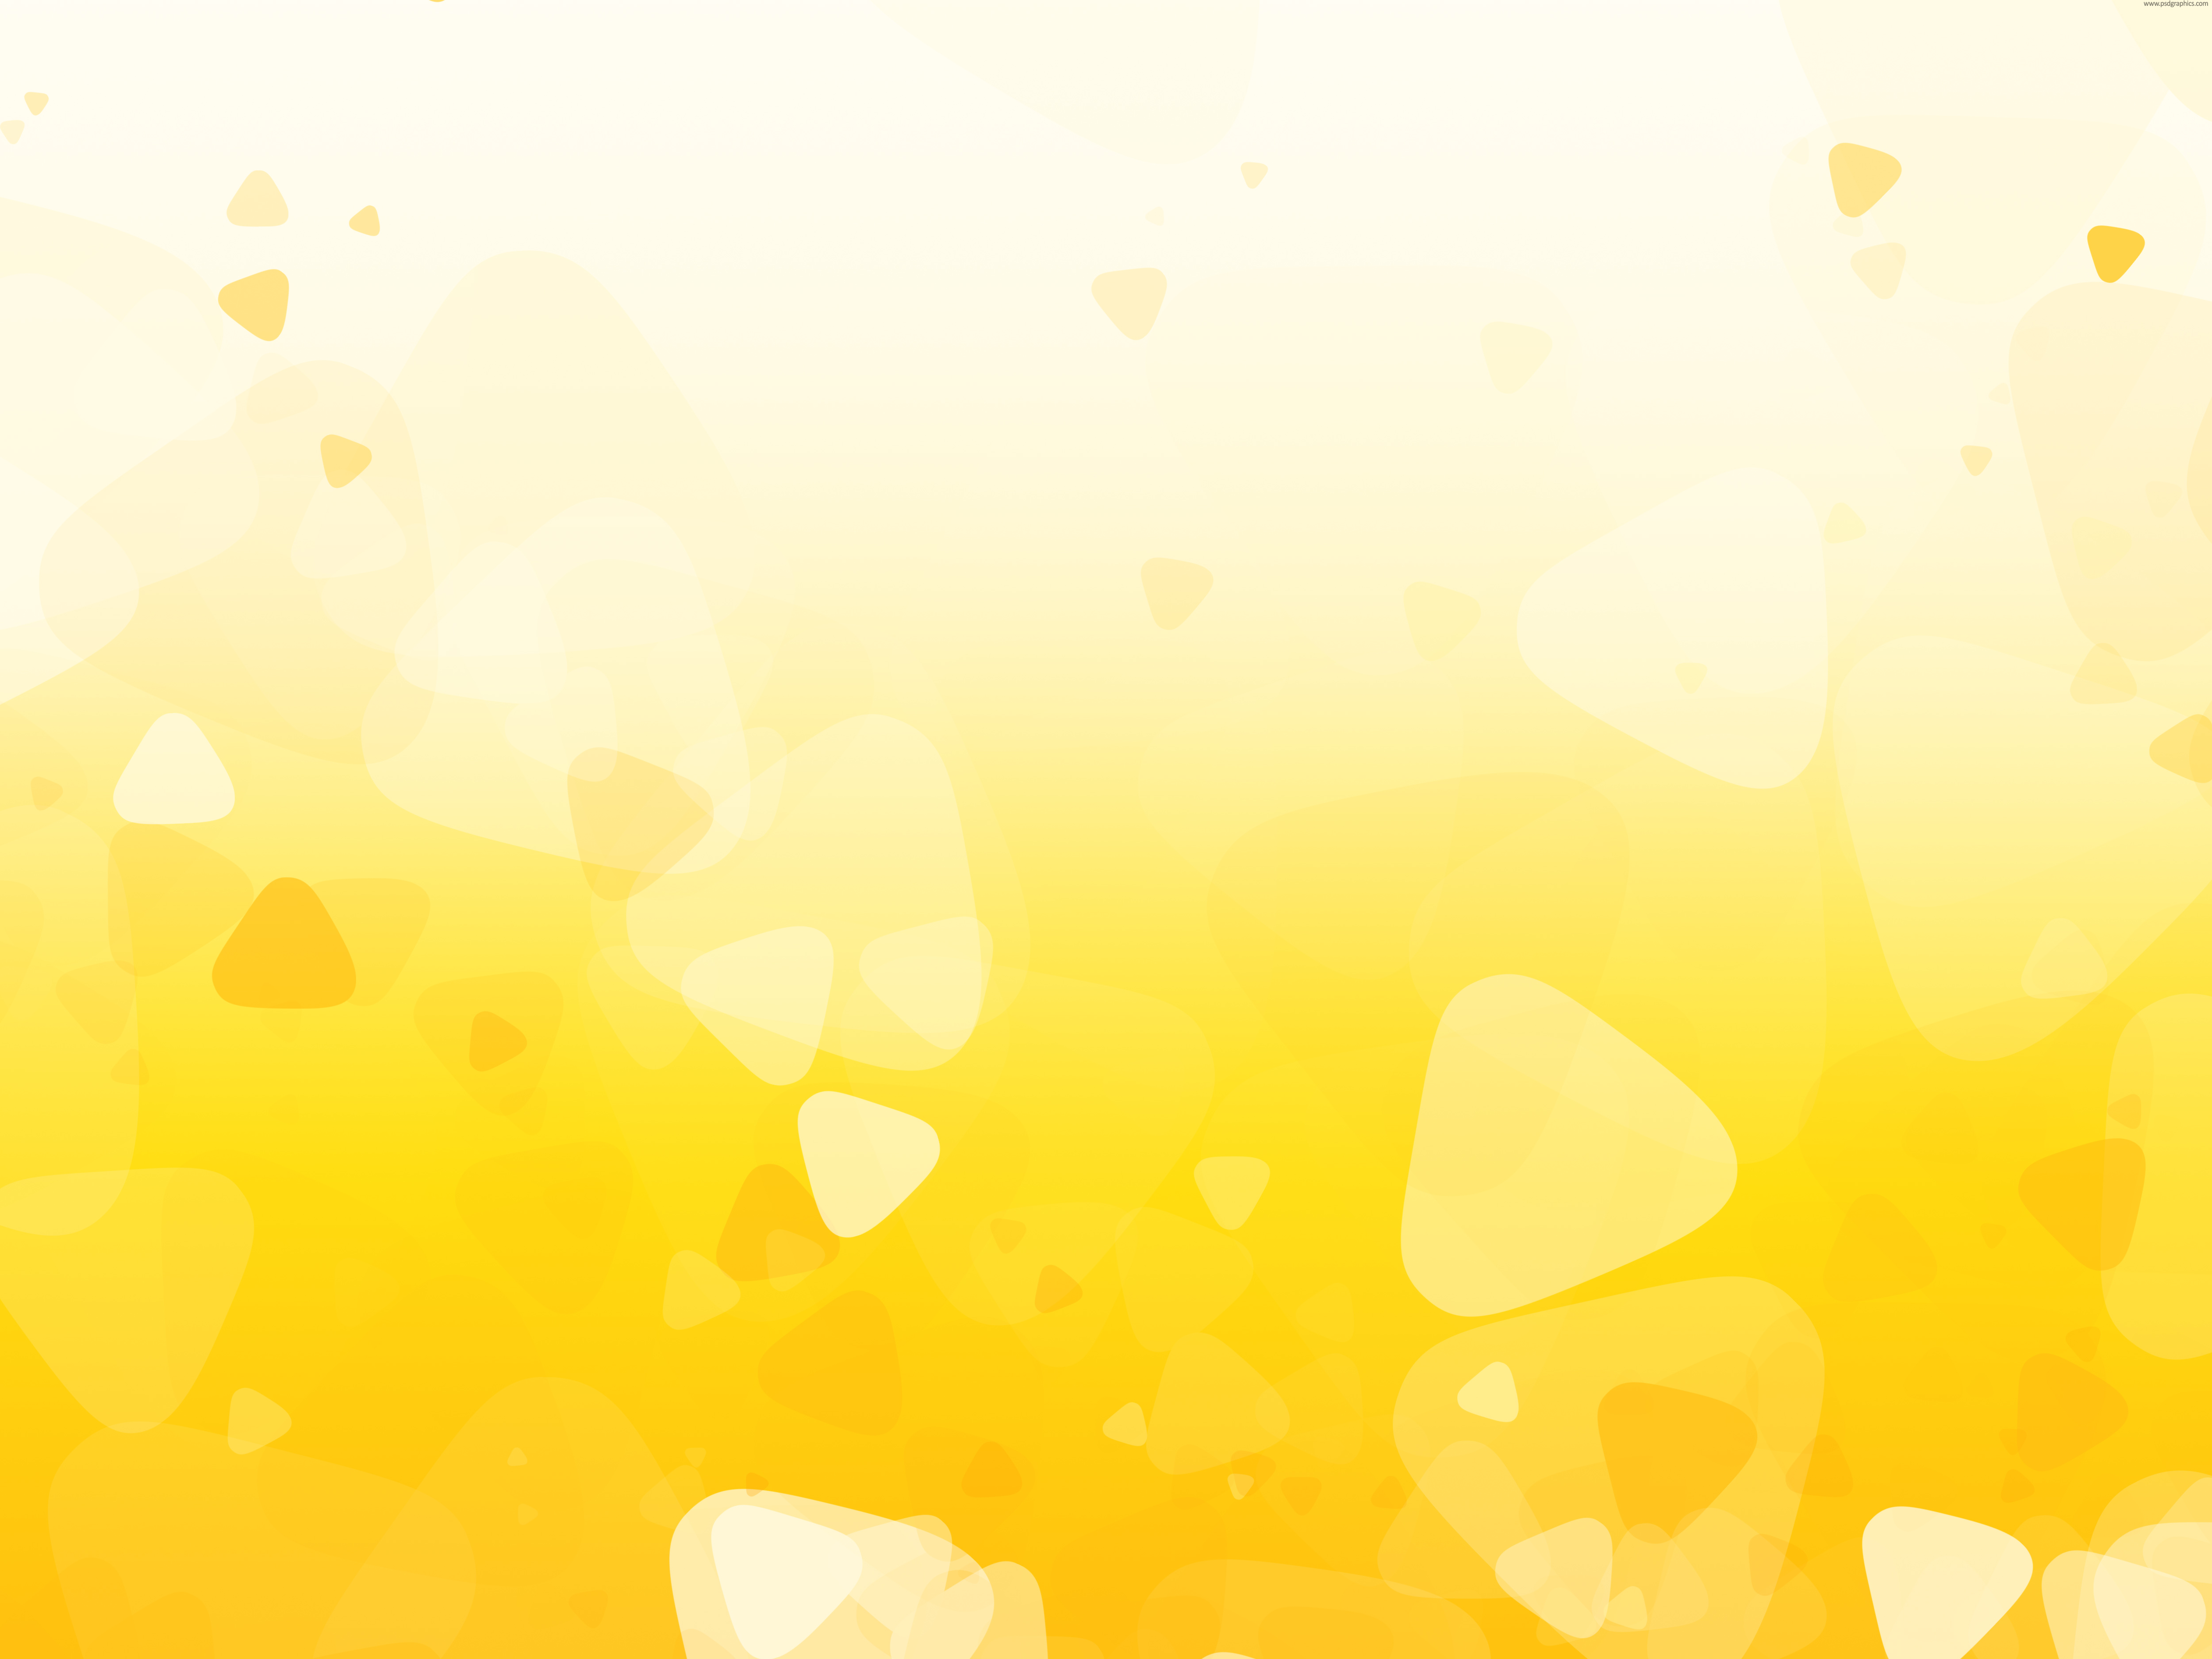 Yellow Shapes Background Background Textures Pinterest